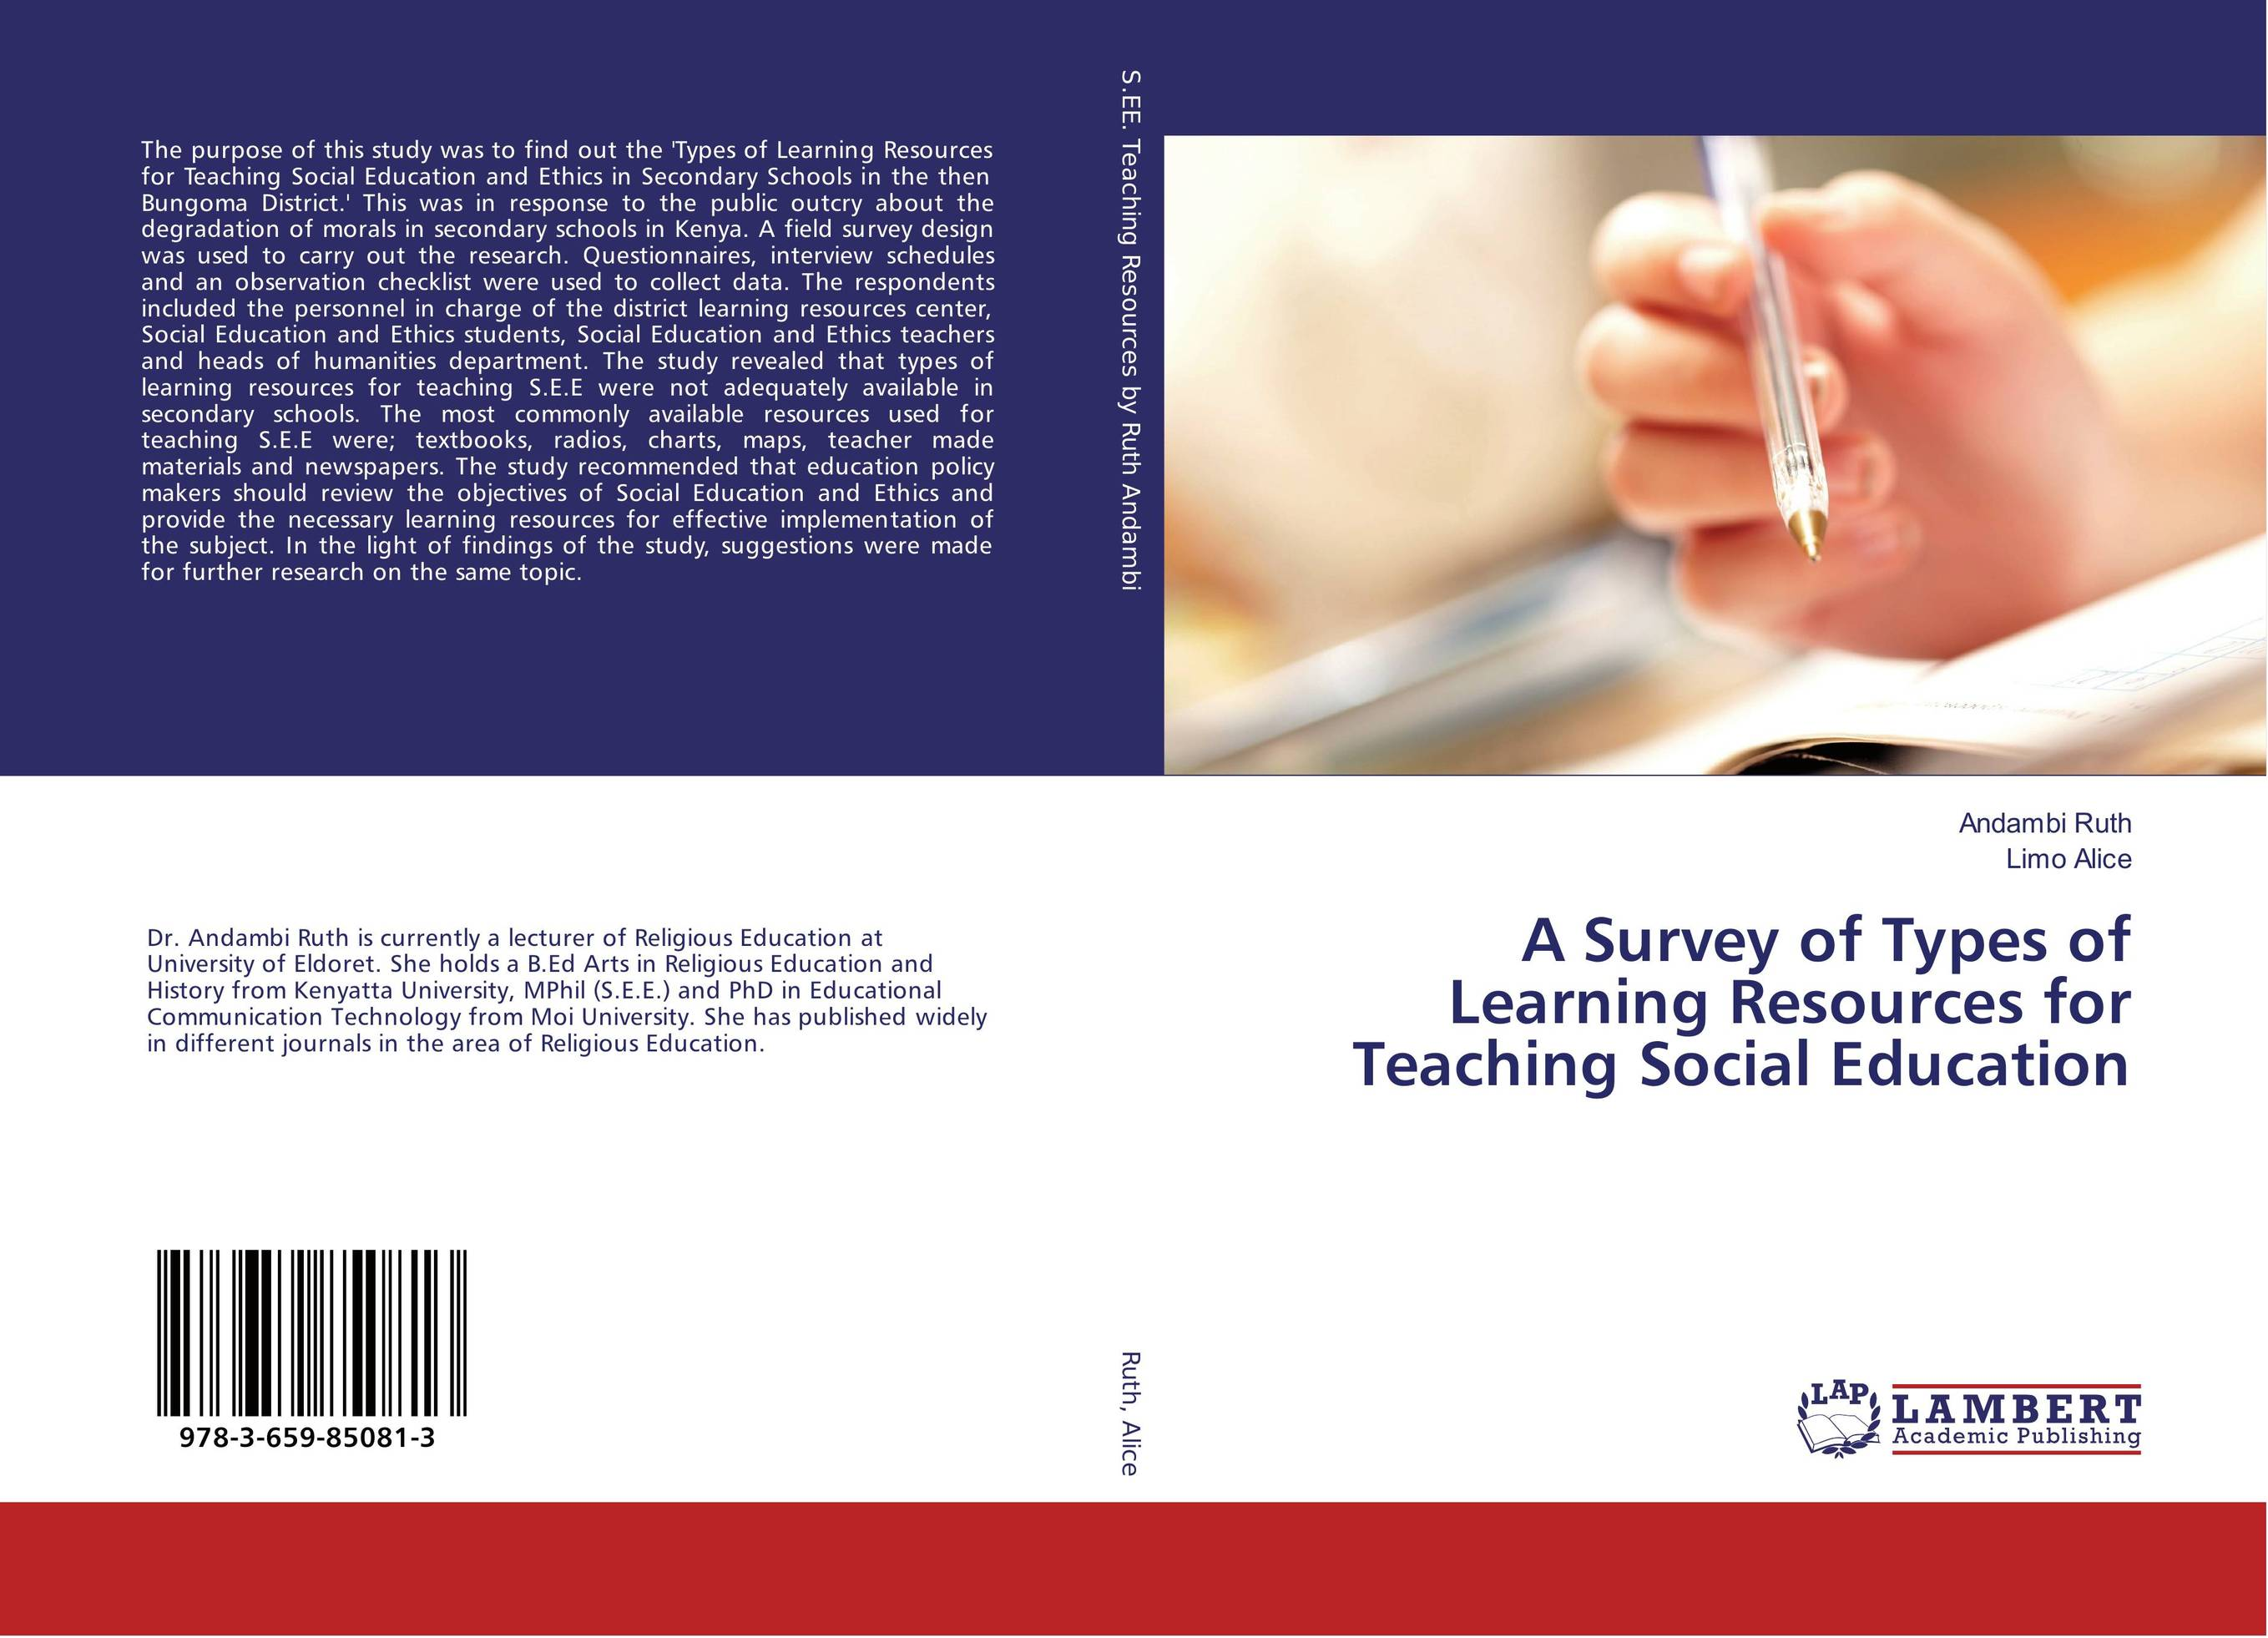 A Survey of Types of Learning Resources for Teaching Social Education learning resources набор пробей